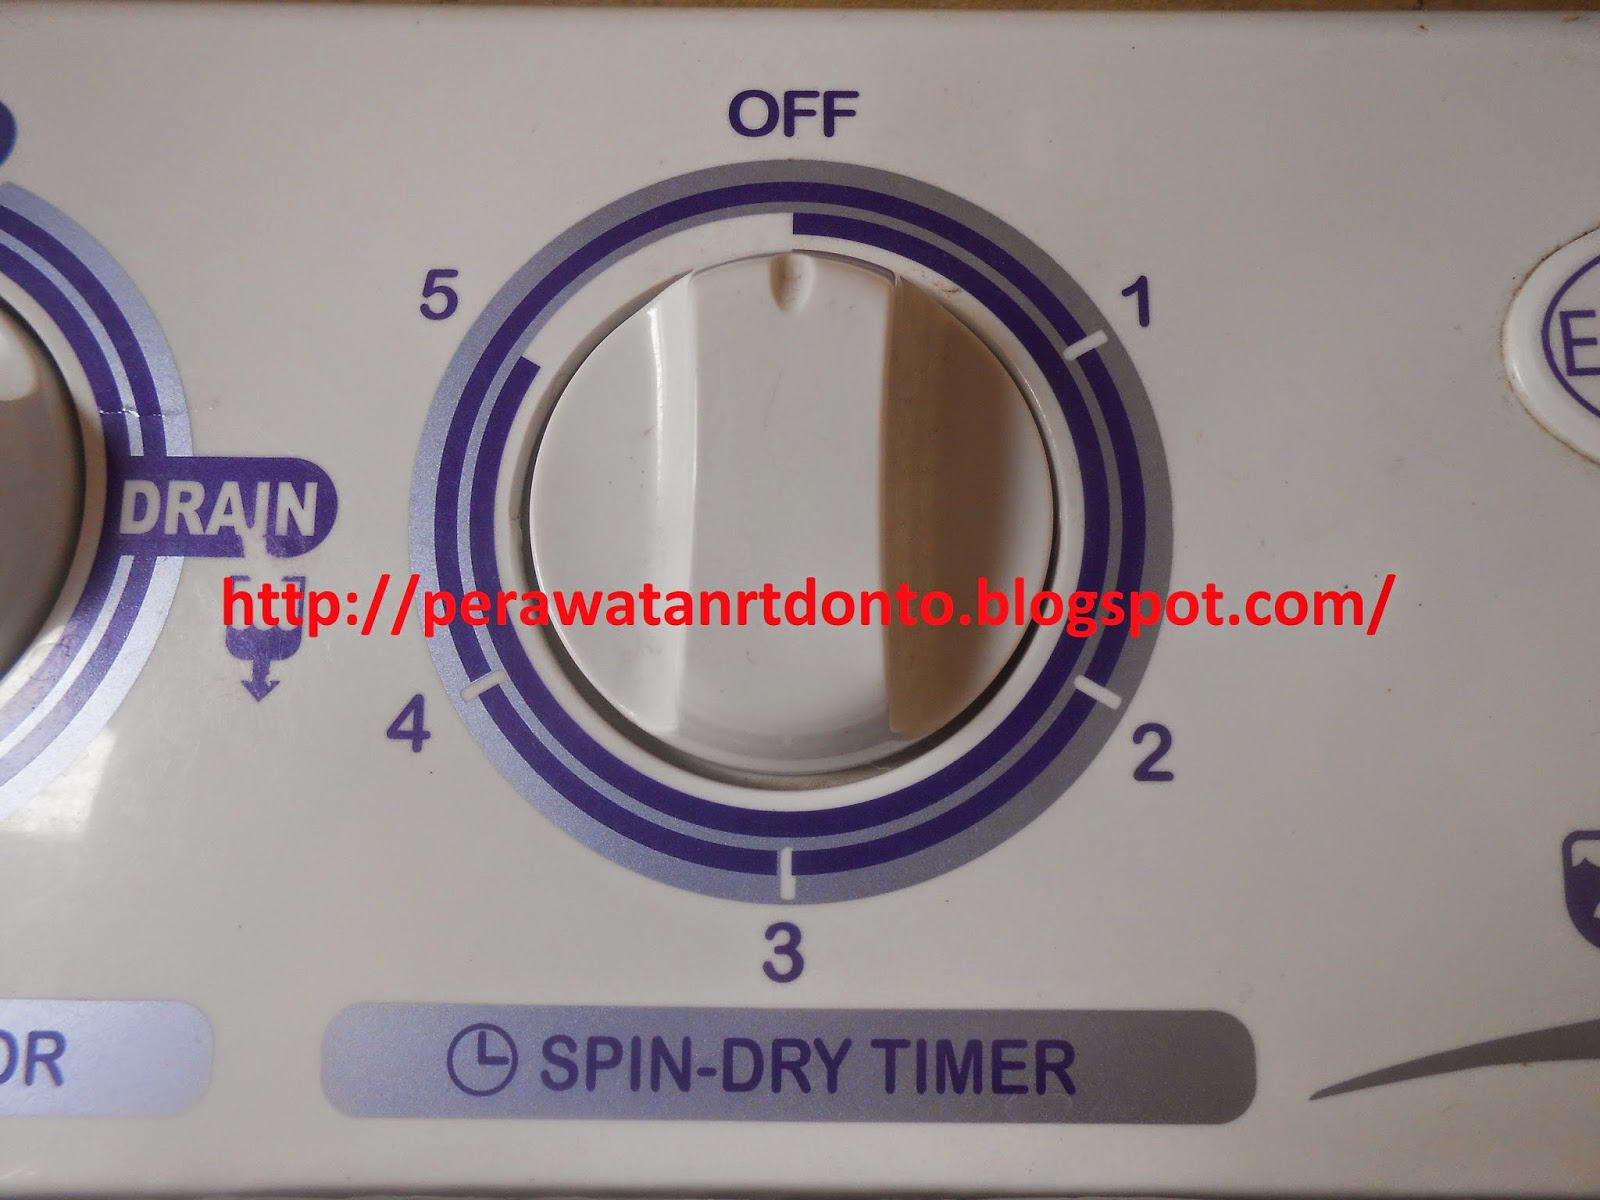 Spin-dry timer